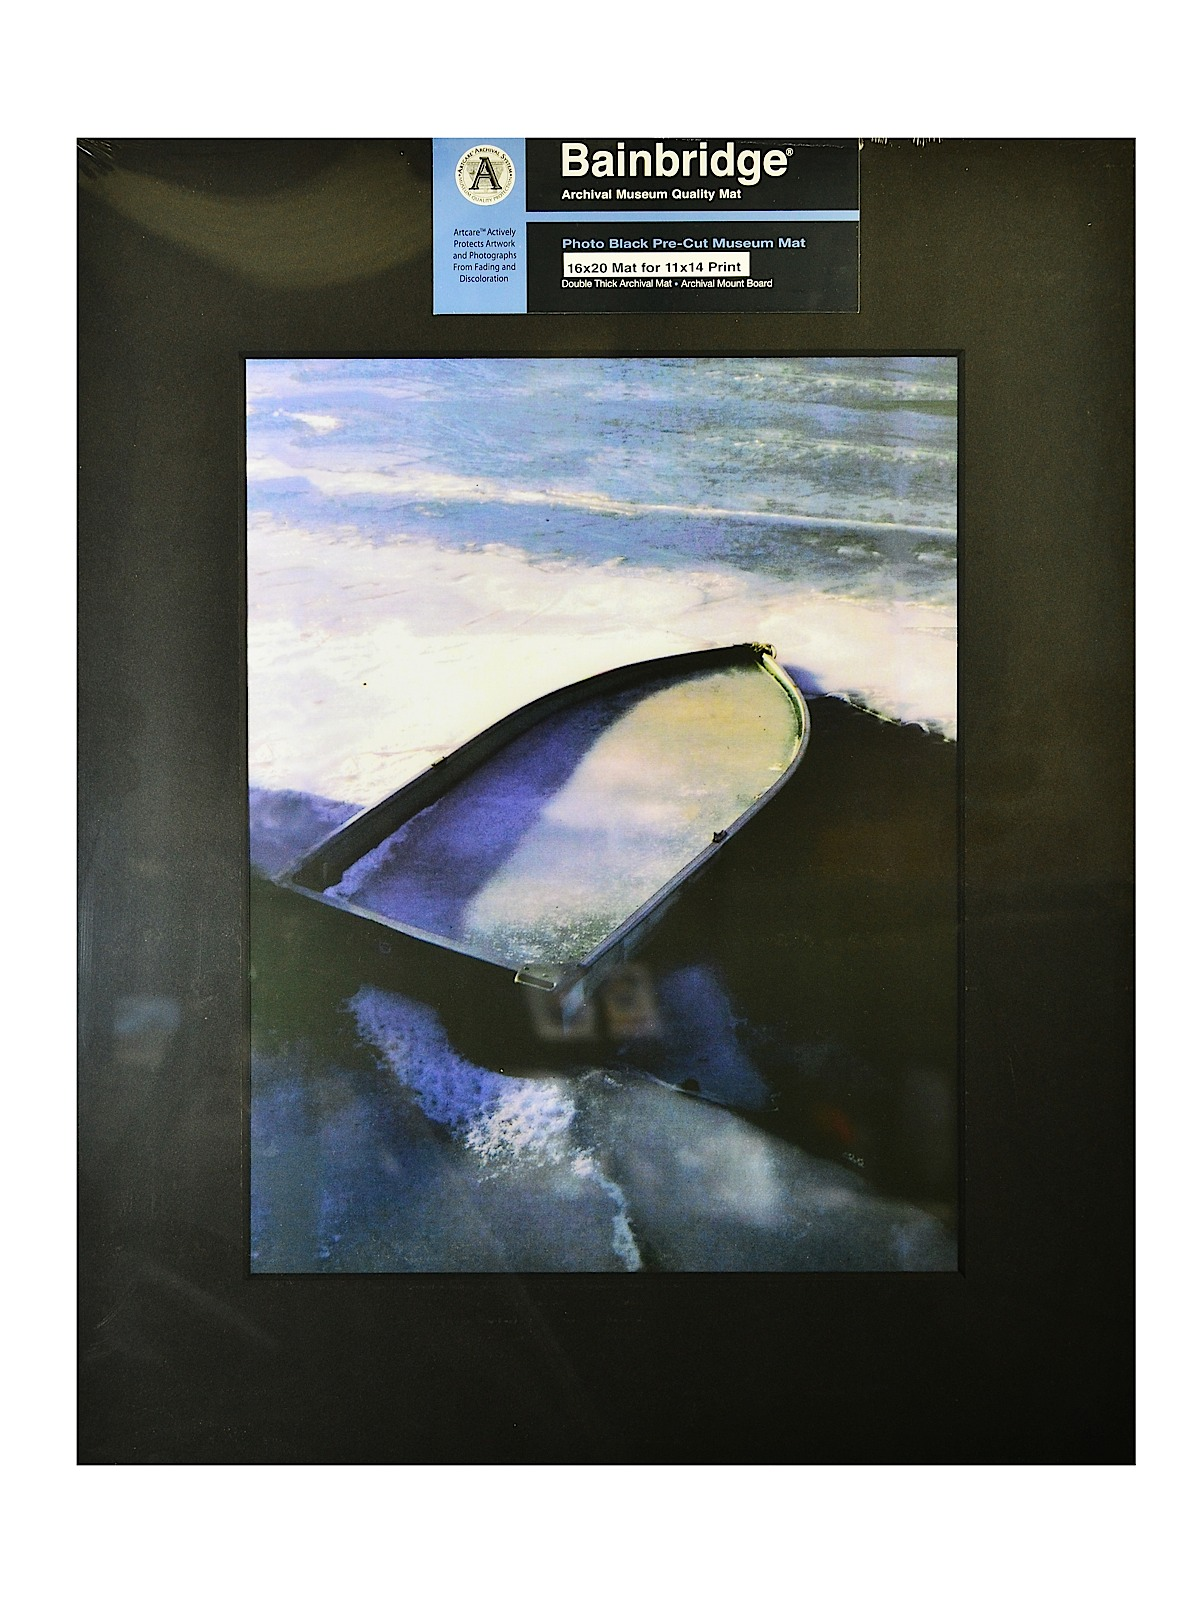 Archival Museum Quality Mat 16 in. x 20 in. centered for 11 in. x 14 in. black